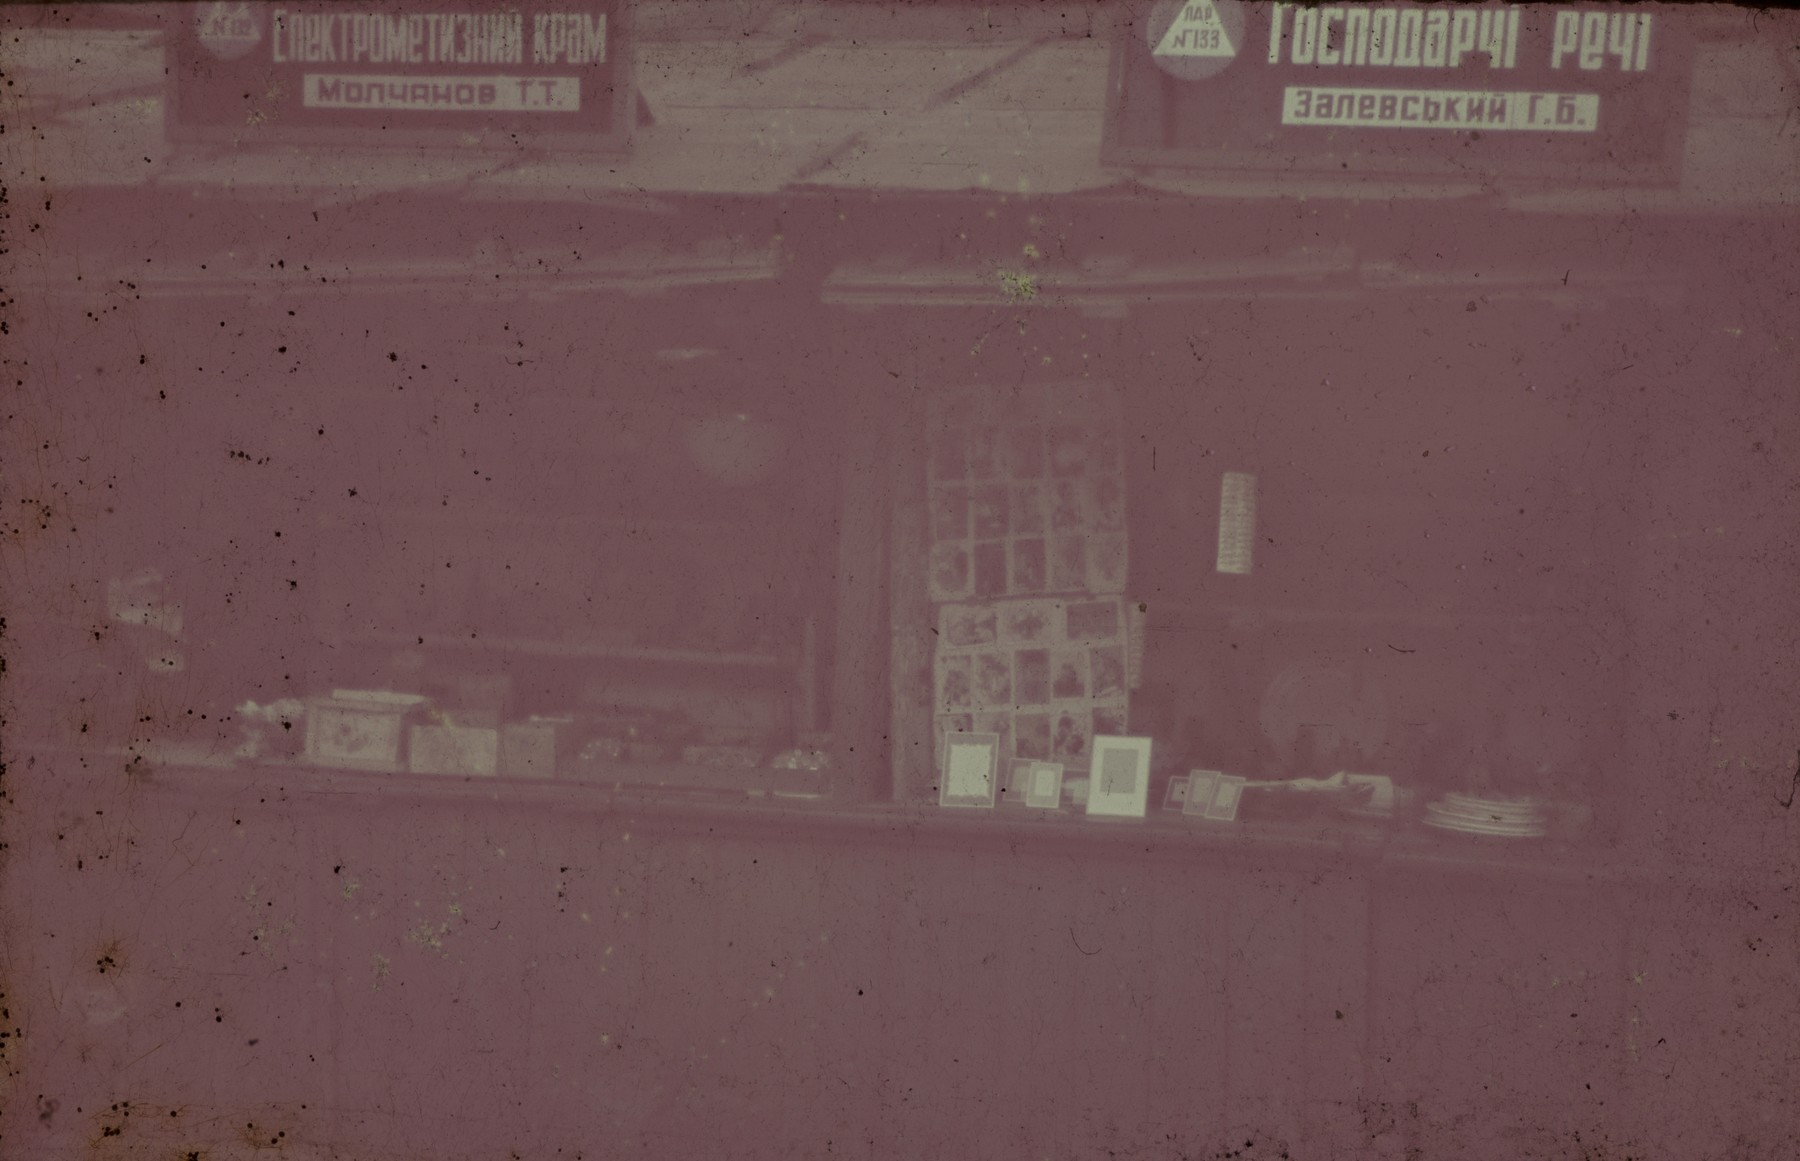 A view of shop windows [possibly in the Lodz ghetto] from the Genewein collection.